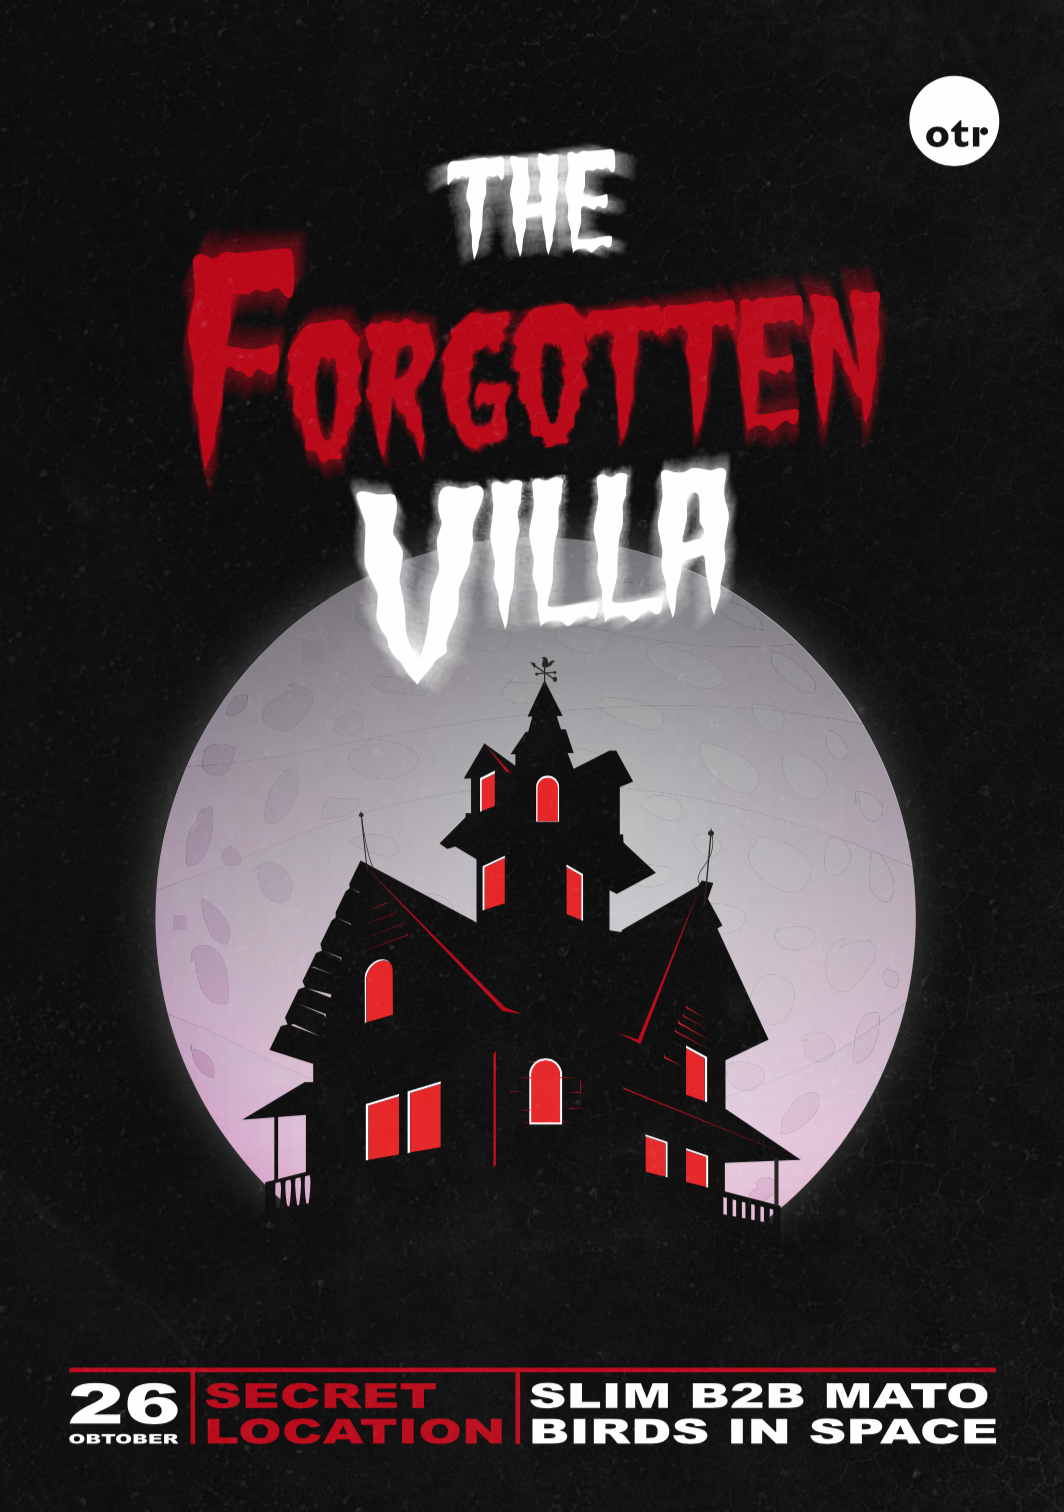 OTR - The Forgotten Villa flyer